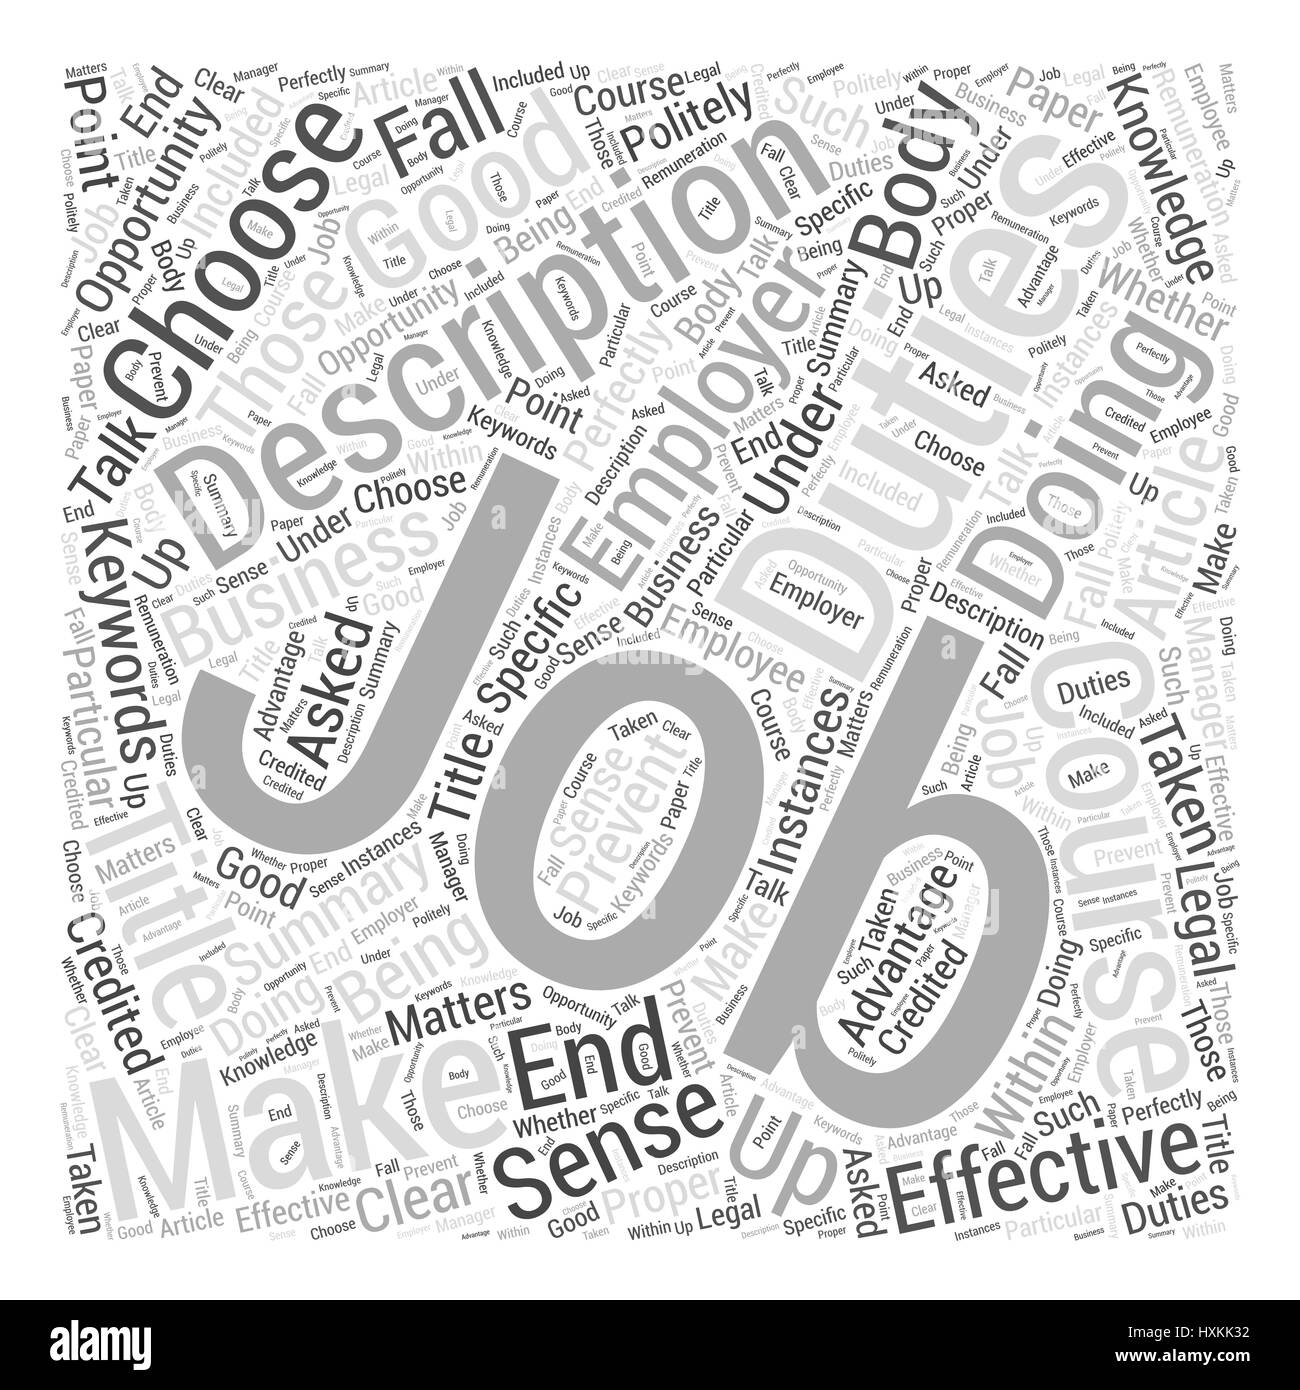 how to make a word cloud in photoshop